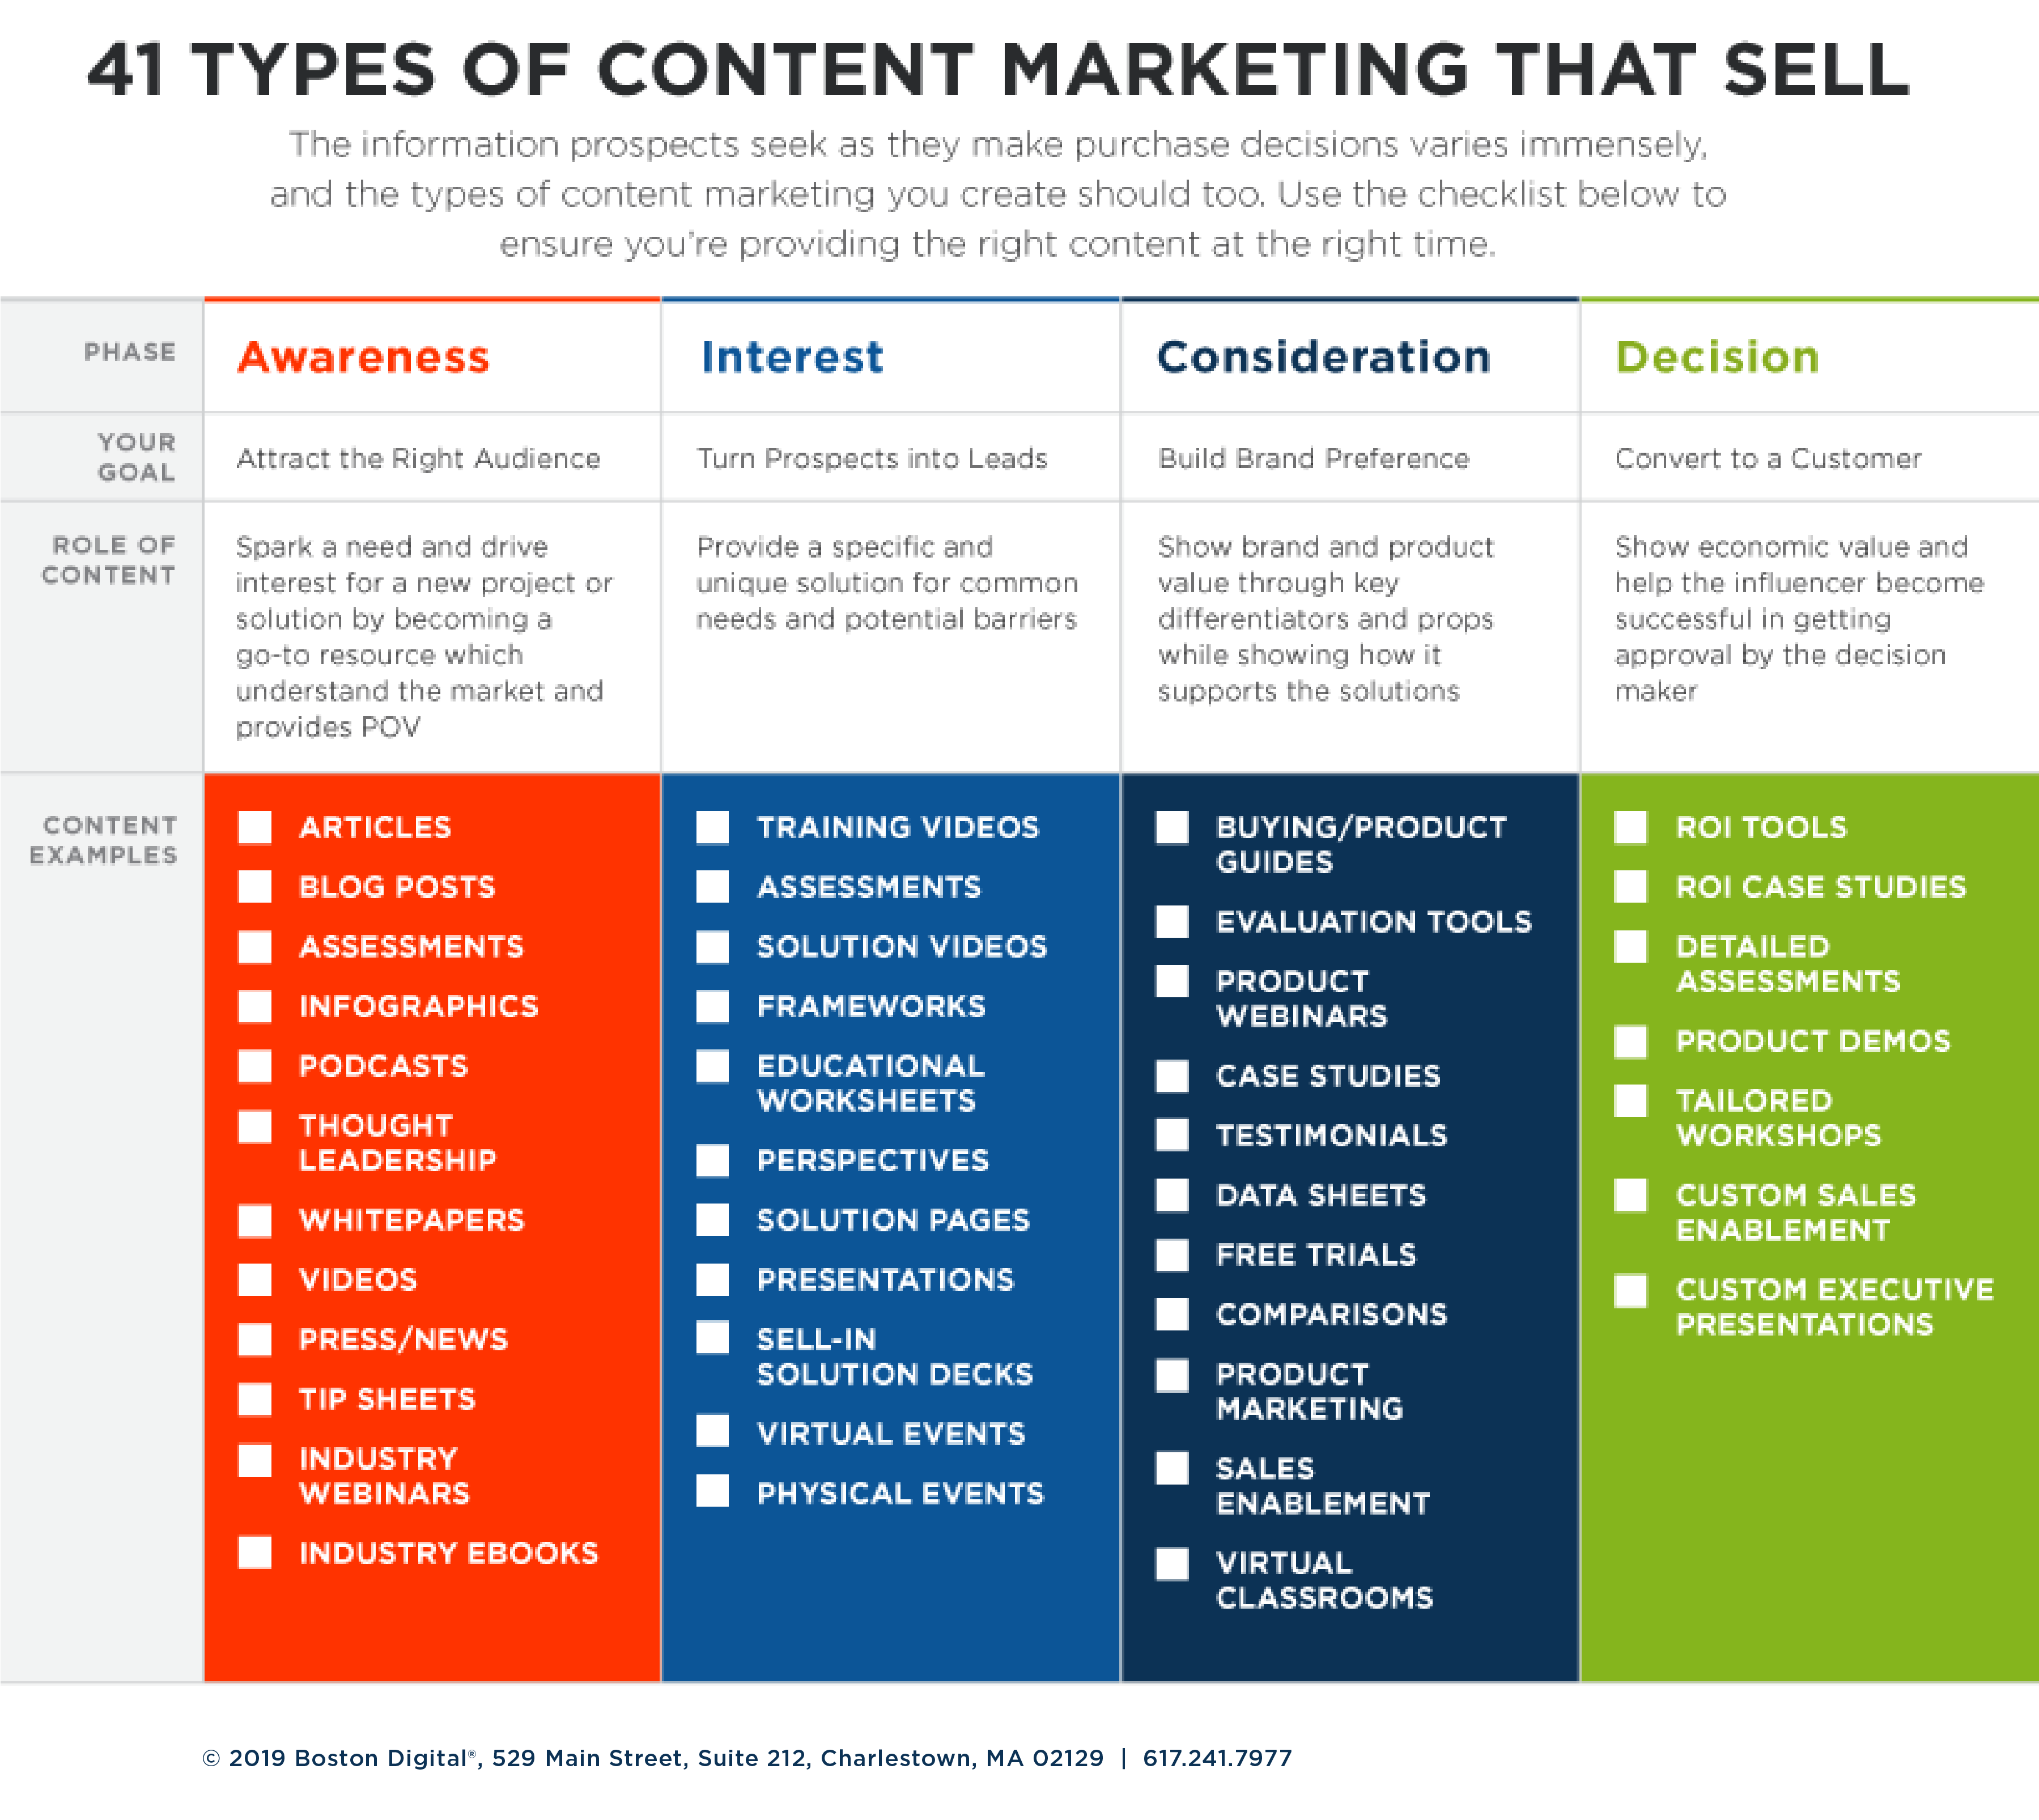 Table of 41 types of content marketing that sells